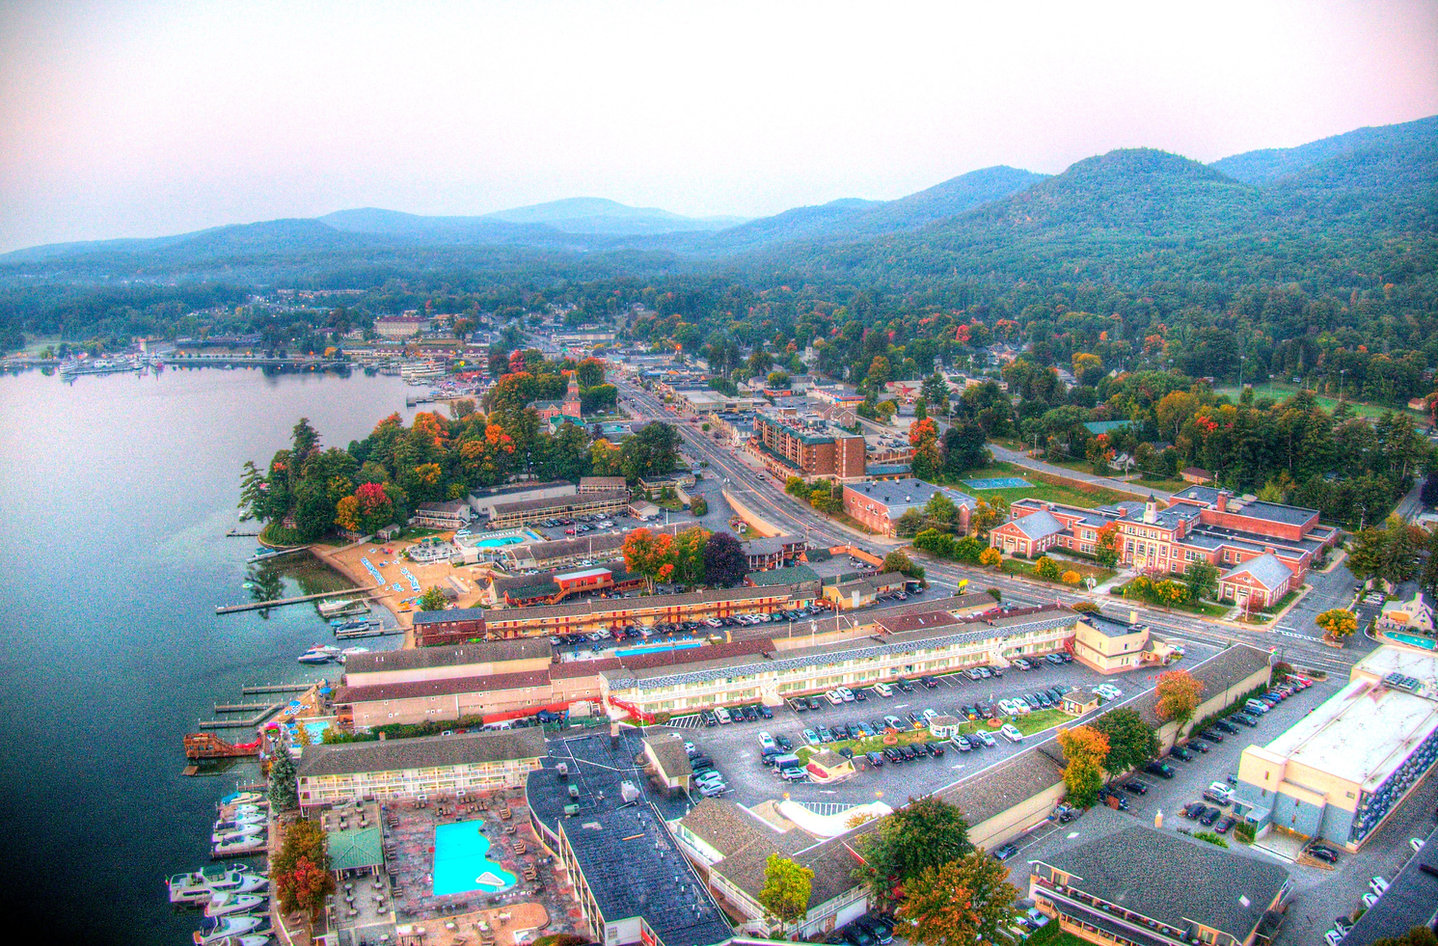 aerial view of lake george village with the adirondack mountains in the background